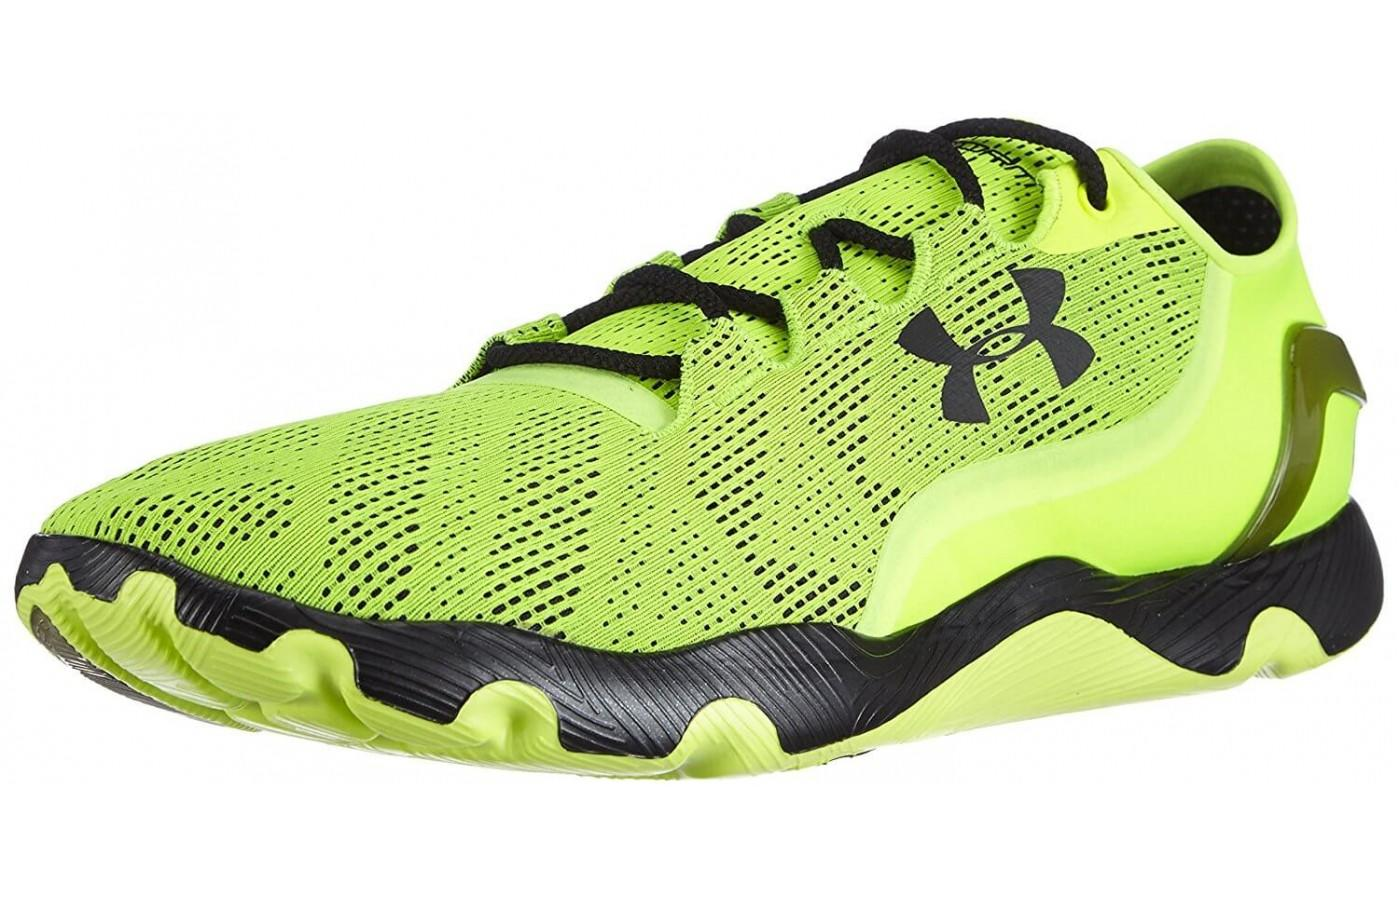 the Under Armour SpeedForm RC Vent shown from the front/side